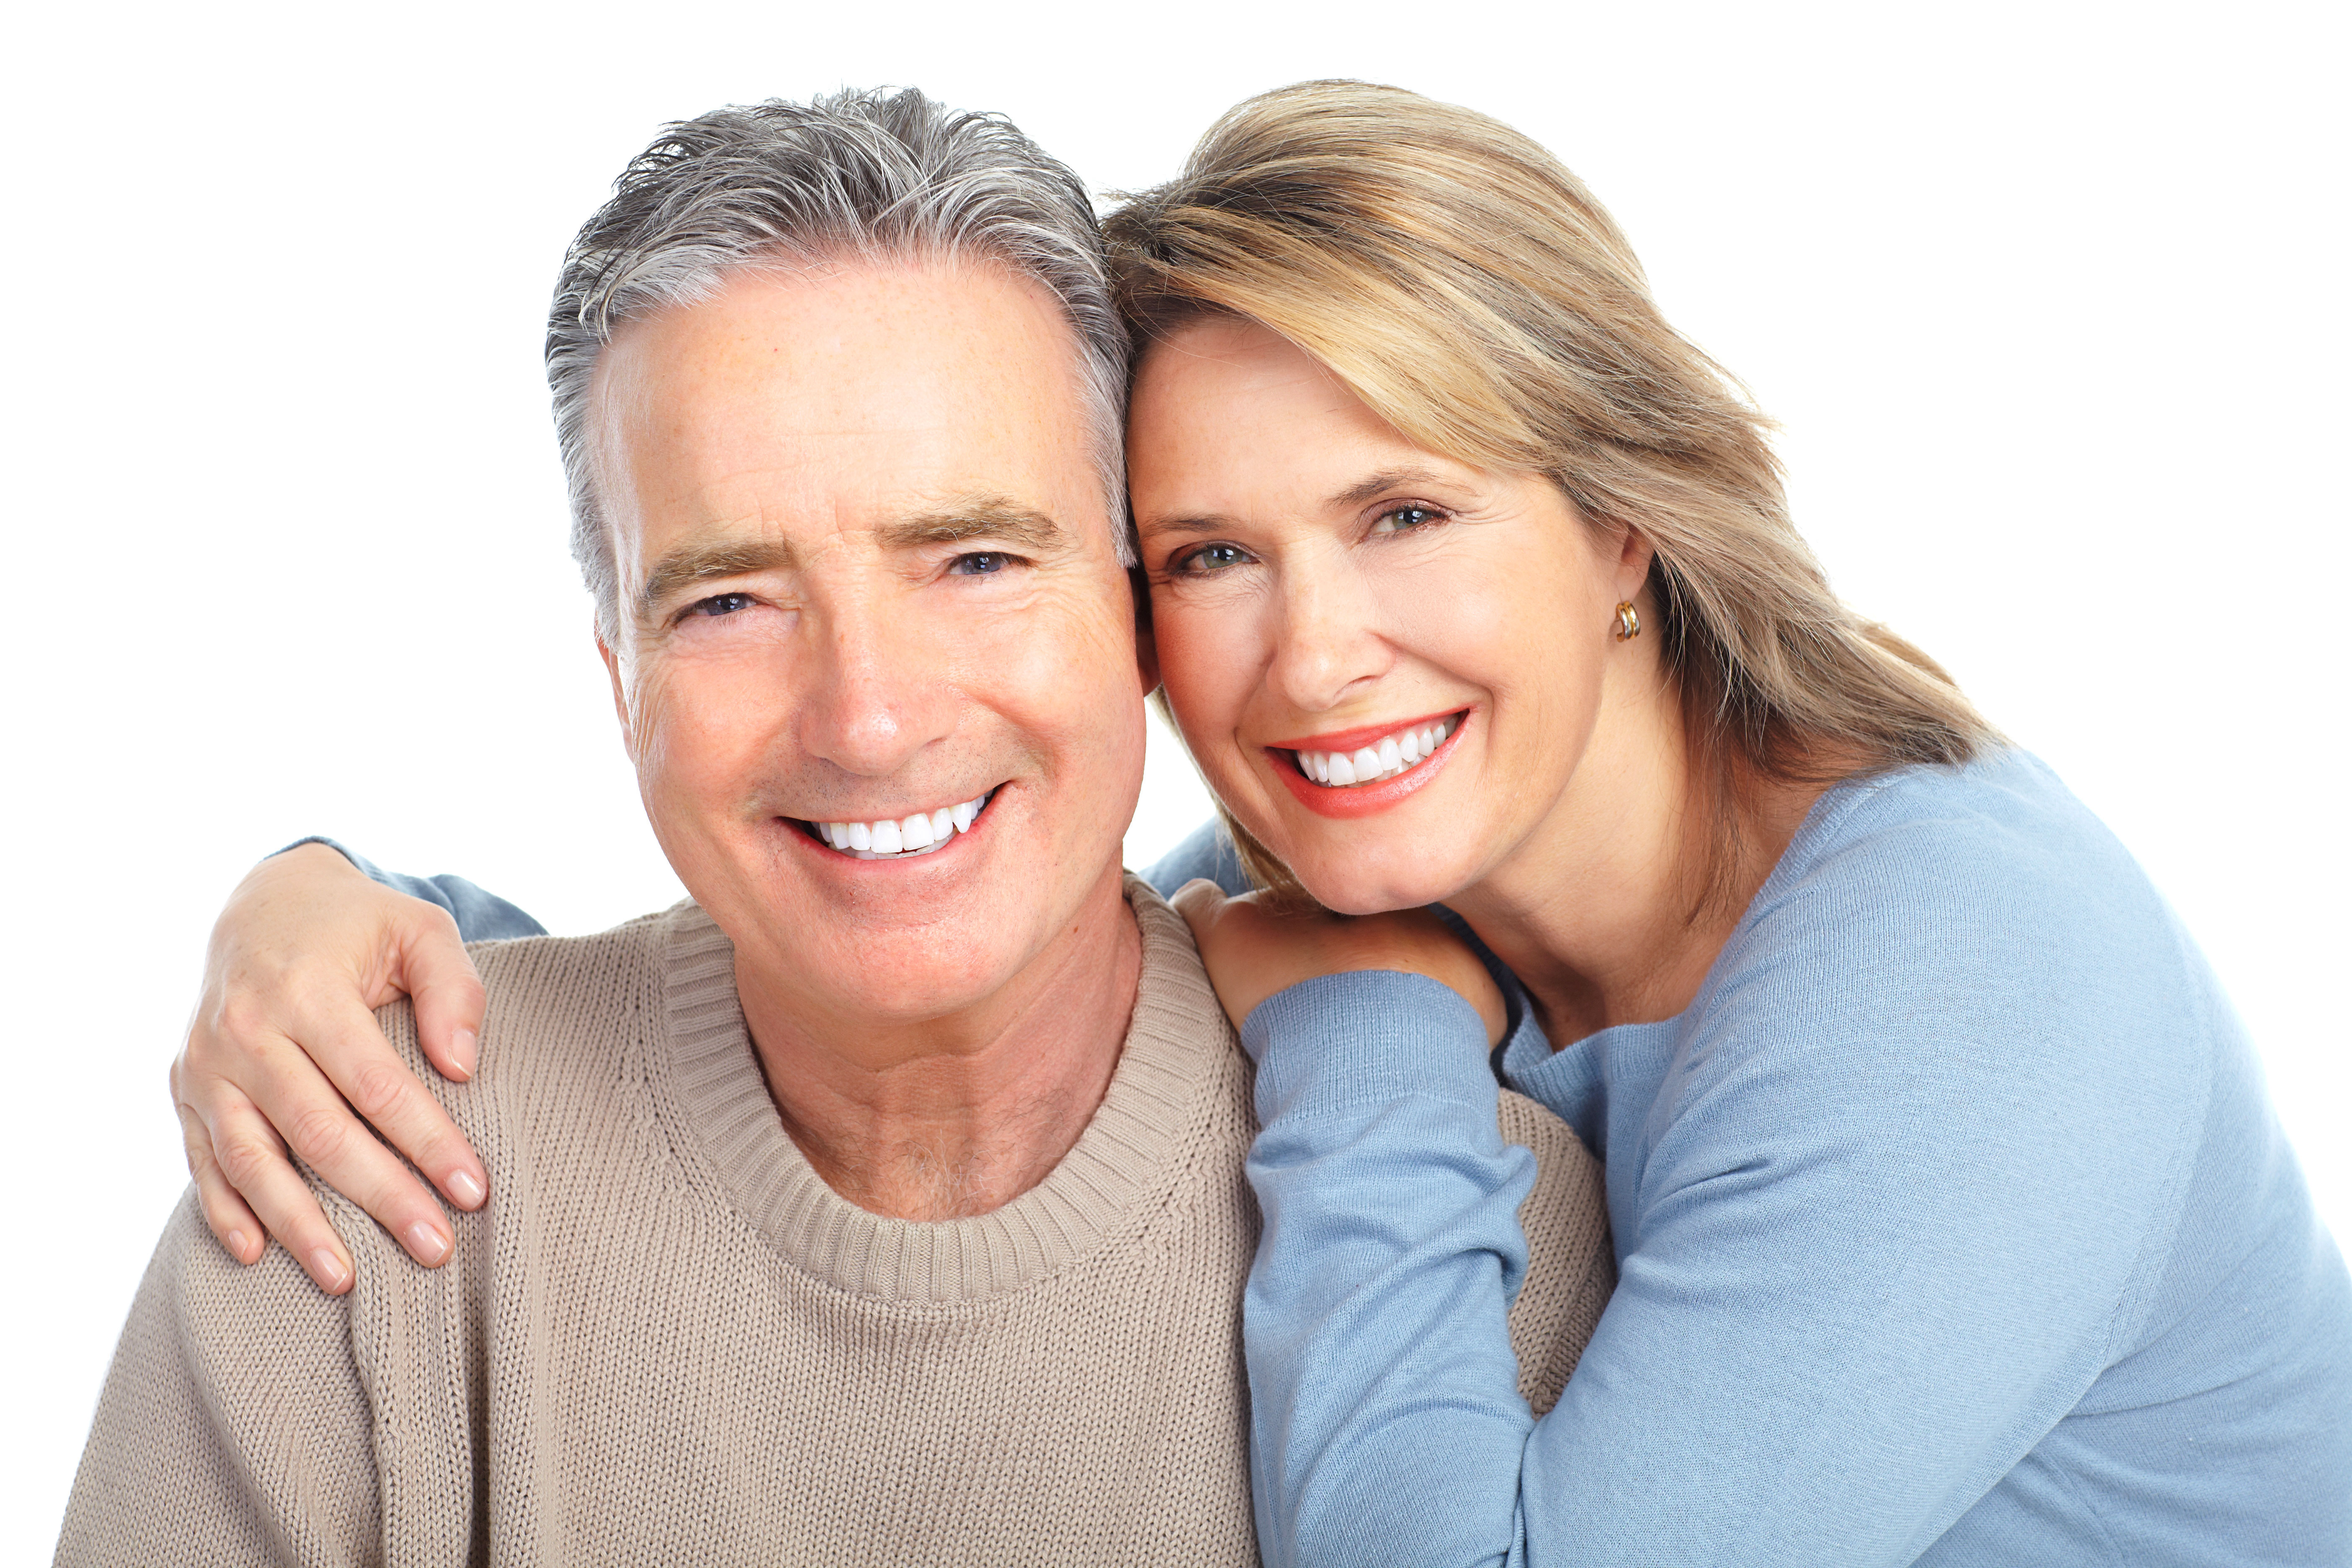 Dental Bridges Treatment in Quincy and Norwell, MA